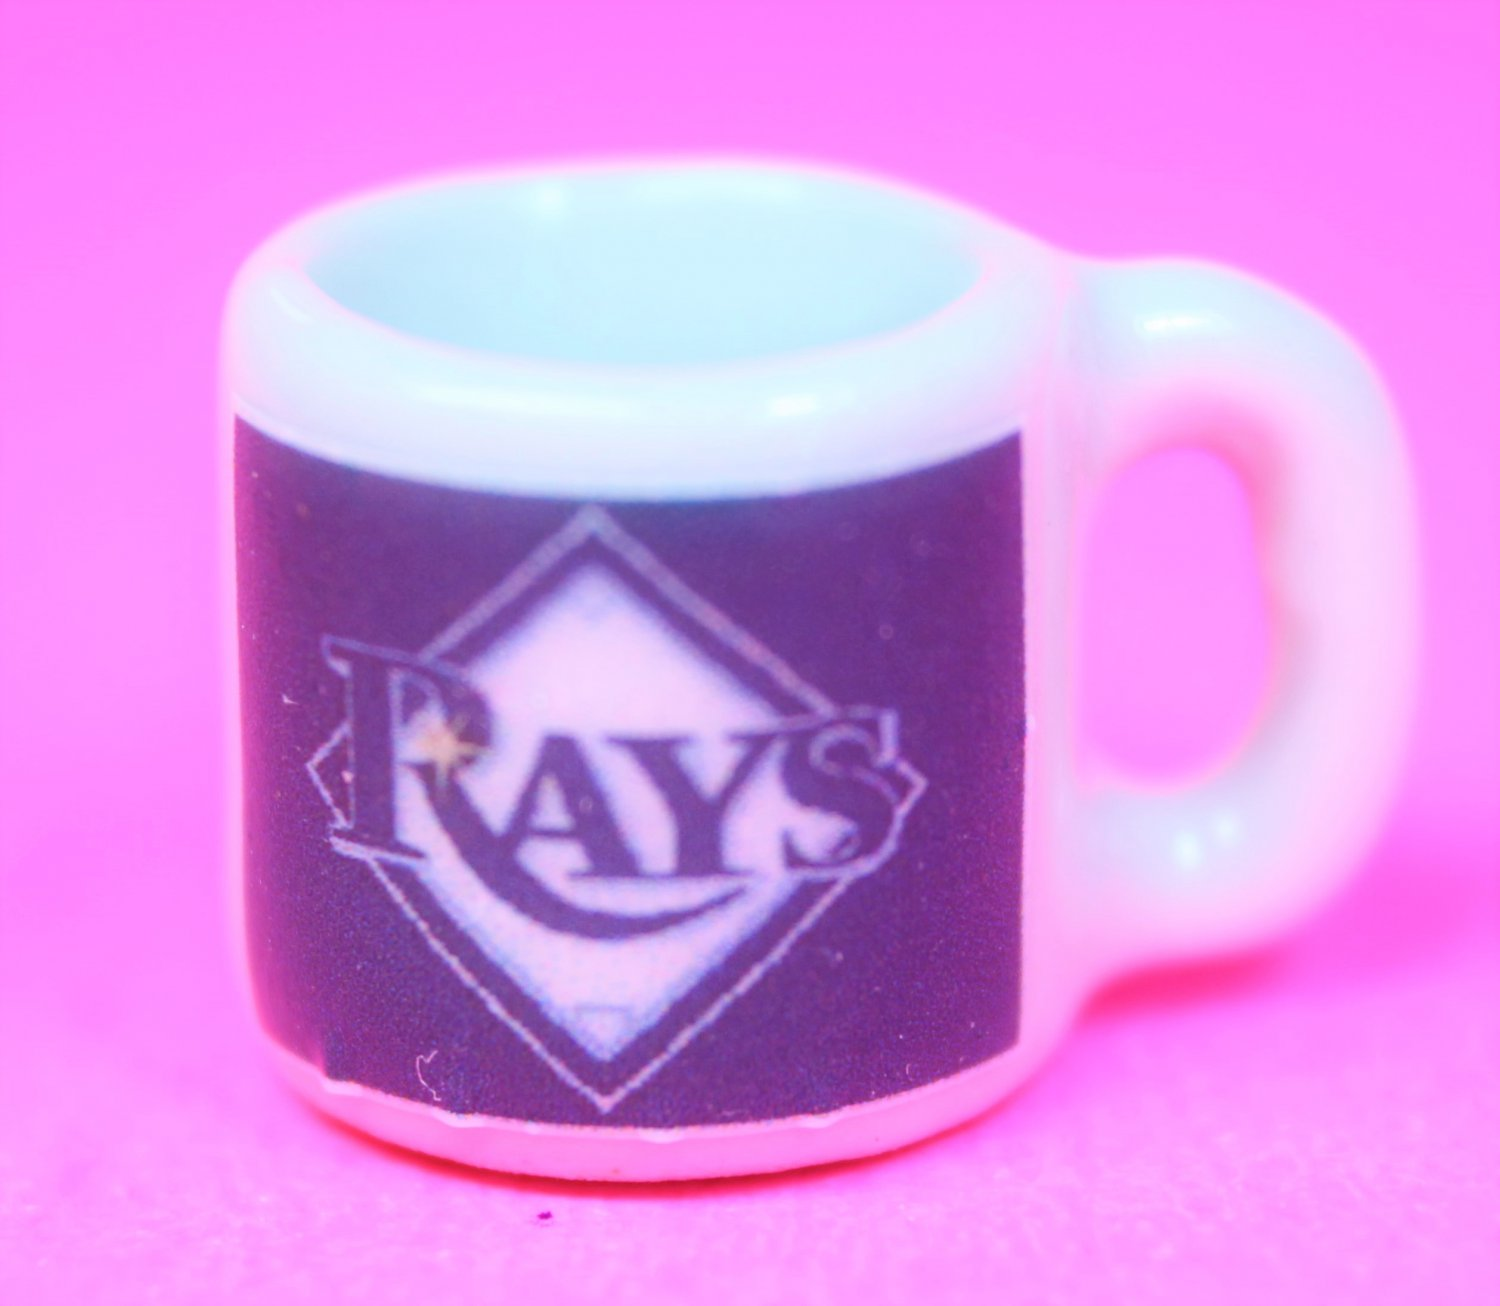 "Dollhouse miniature size 1/12"" scale replica Rays sports coffee mug"